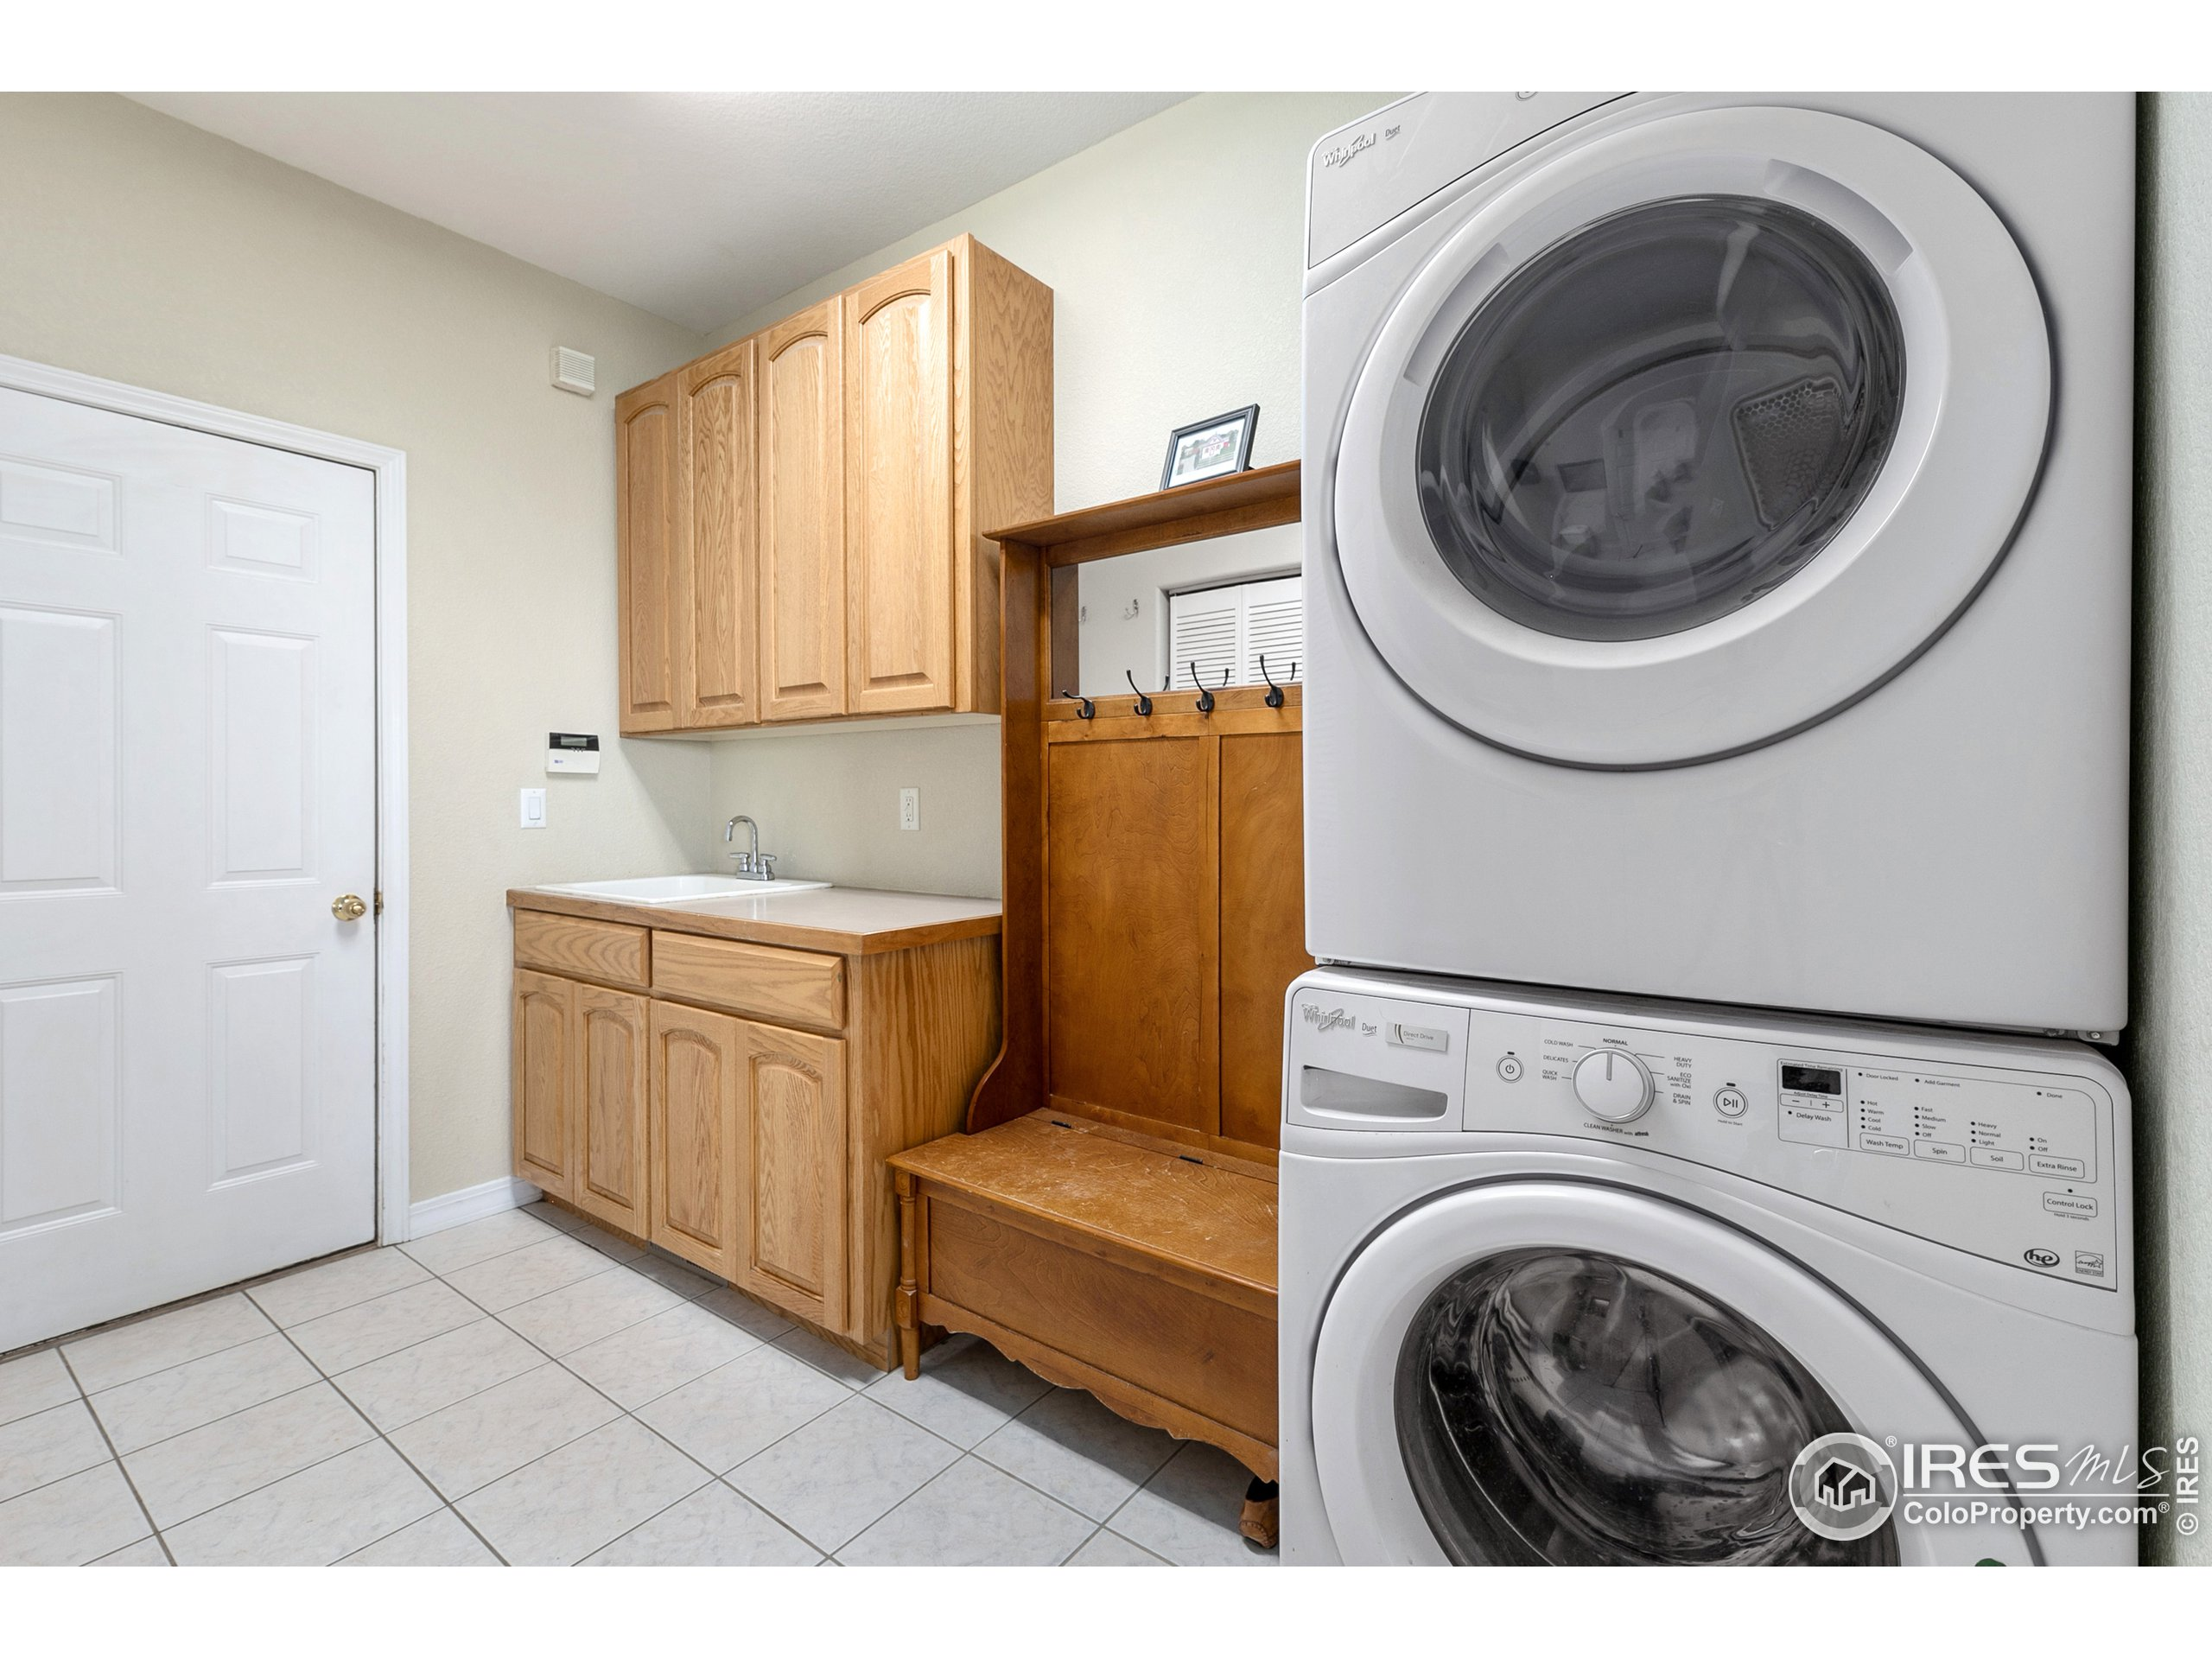 full laundry room with sink, cabinets, counters and closets for storage